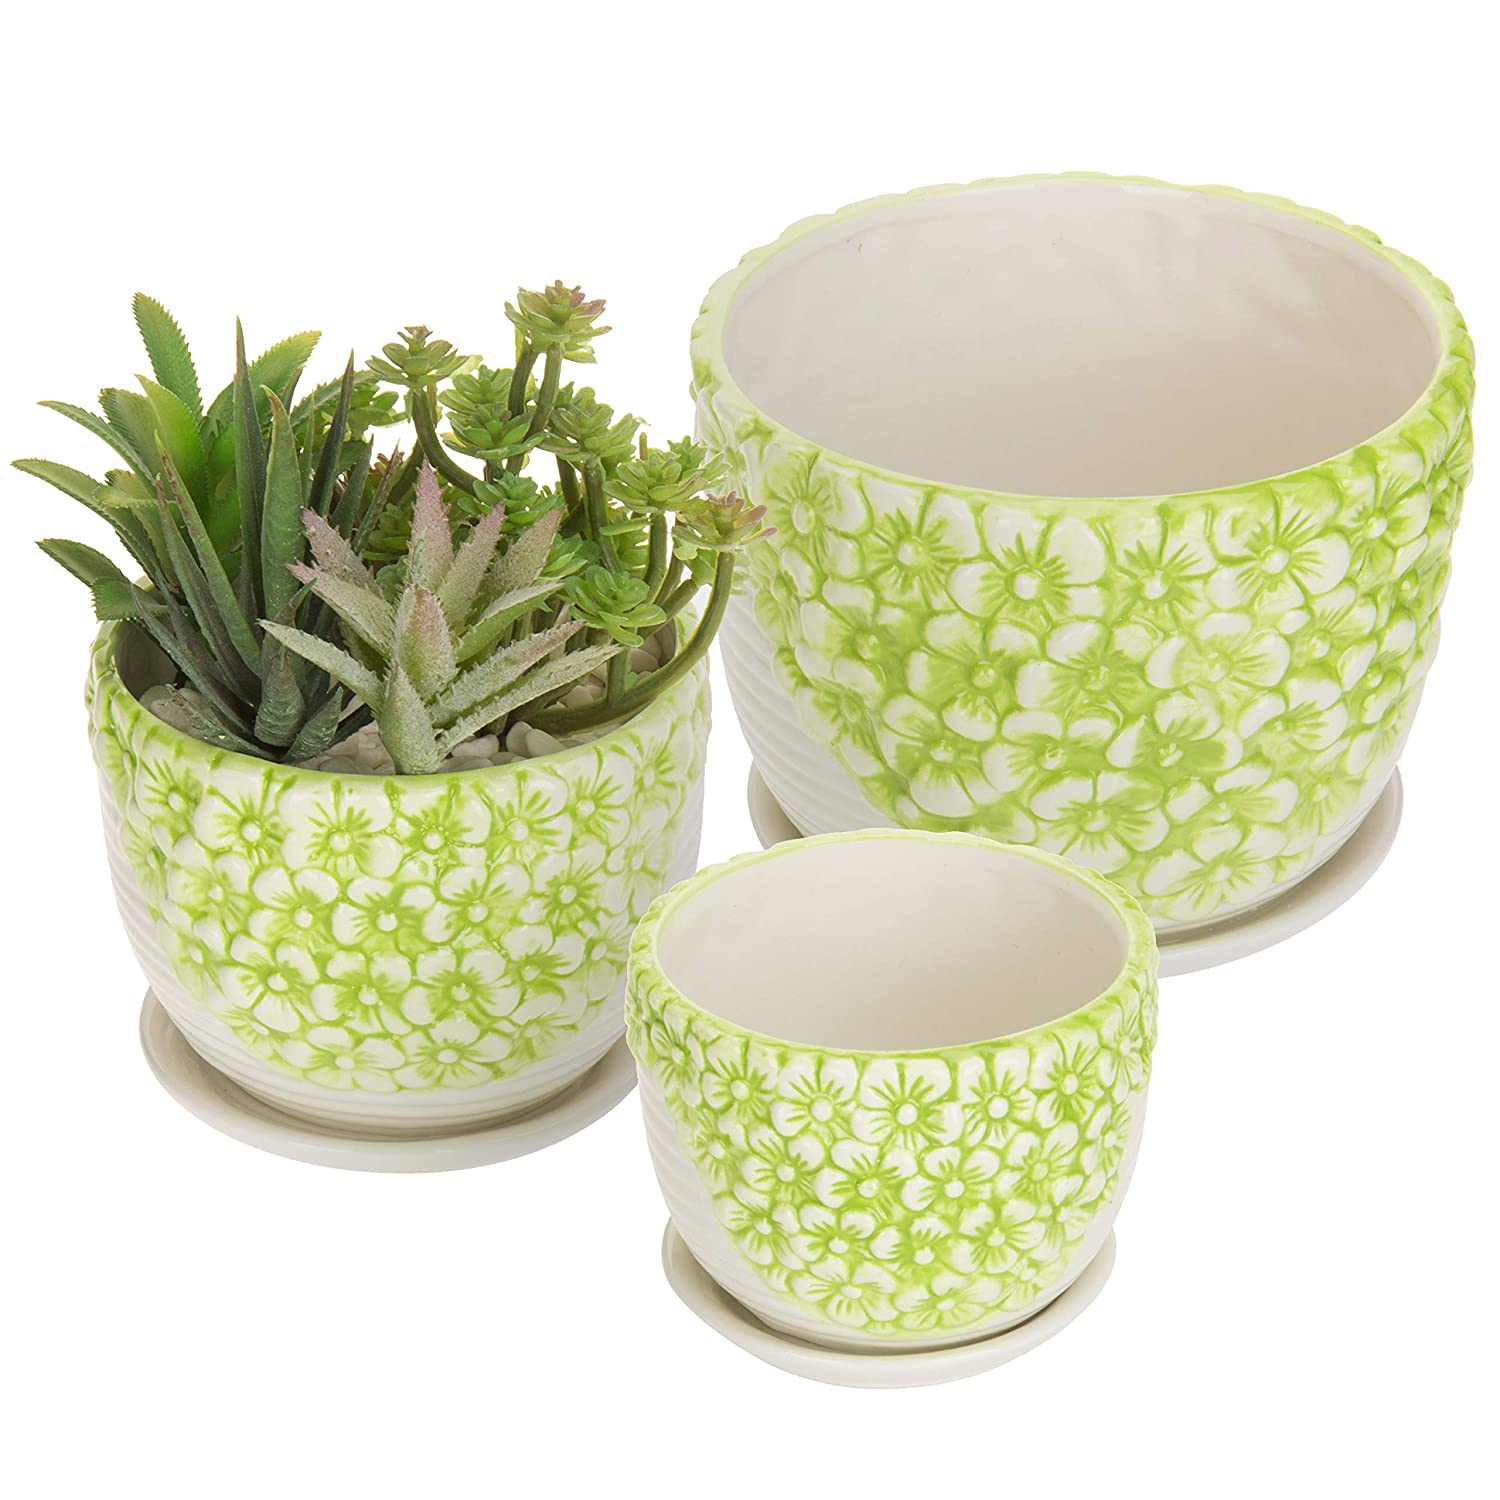 225 & MyGift Set of 3 Green \u0026 White Flower Design Nesting Ceramic Planter Pots/Plant Containers w/Attached Saucers